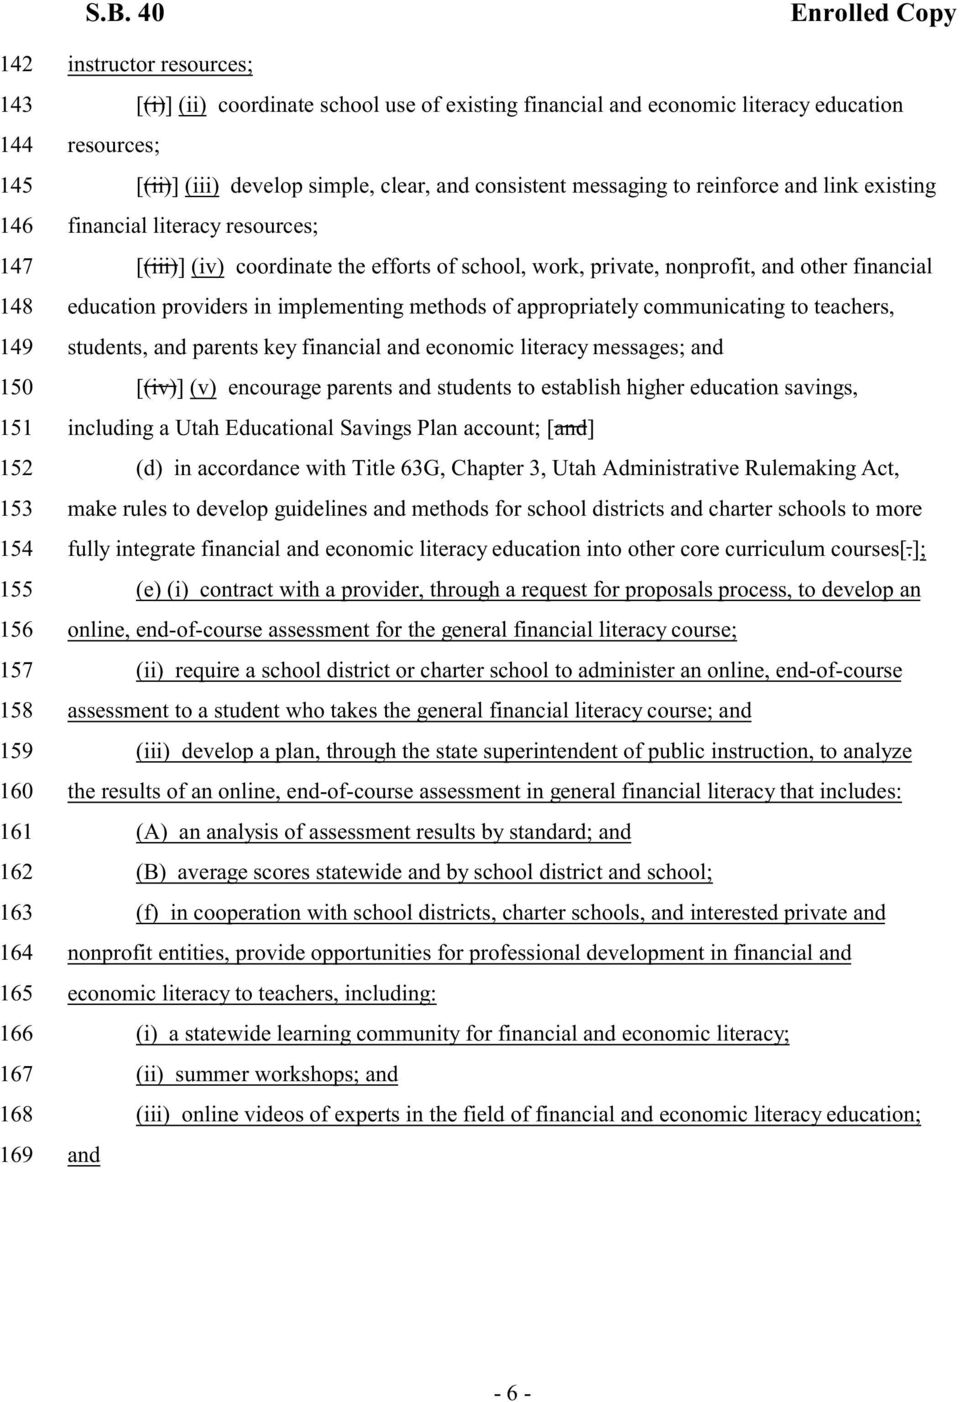 providers in implementing methods of appropriately communicating to teachers, 149 students, and parents key financial and economic literacy messages; and 150 [(iv)] (v) encourage parents and students